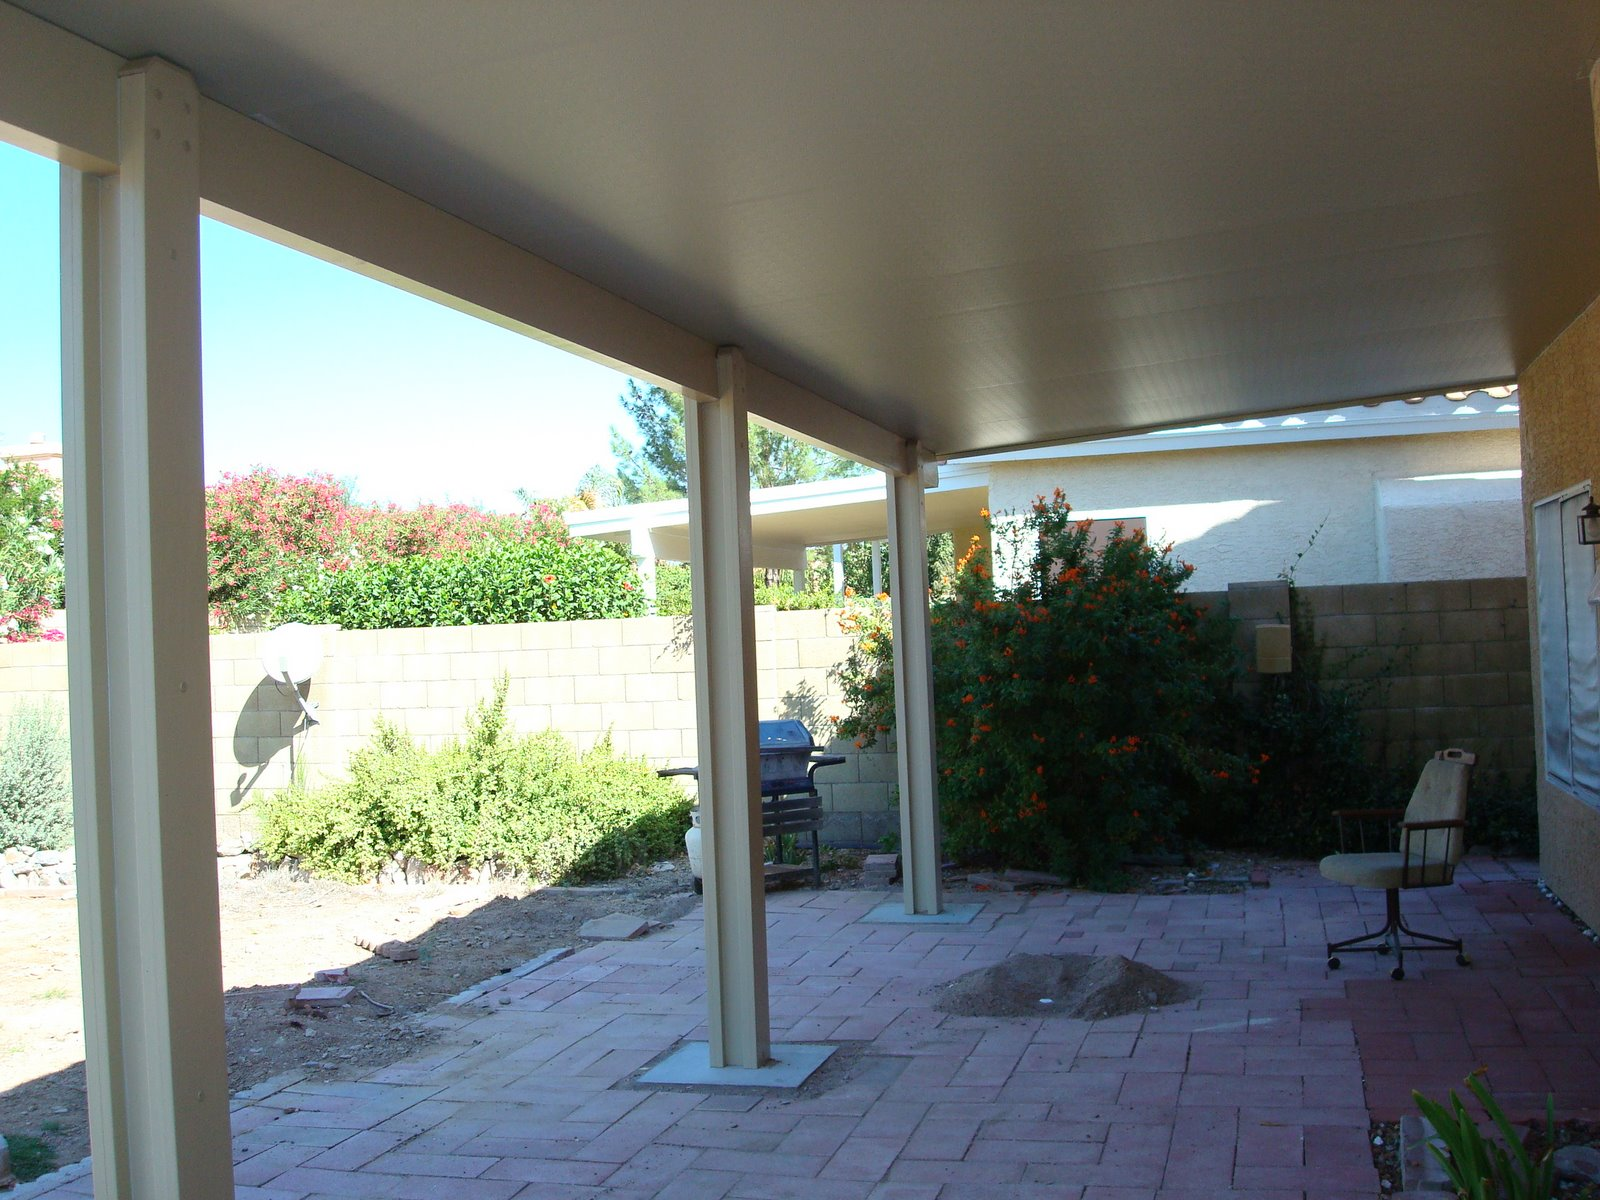 Patio Roo0f With New Insulated Aluminum Roof Panels